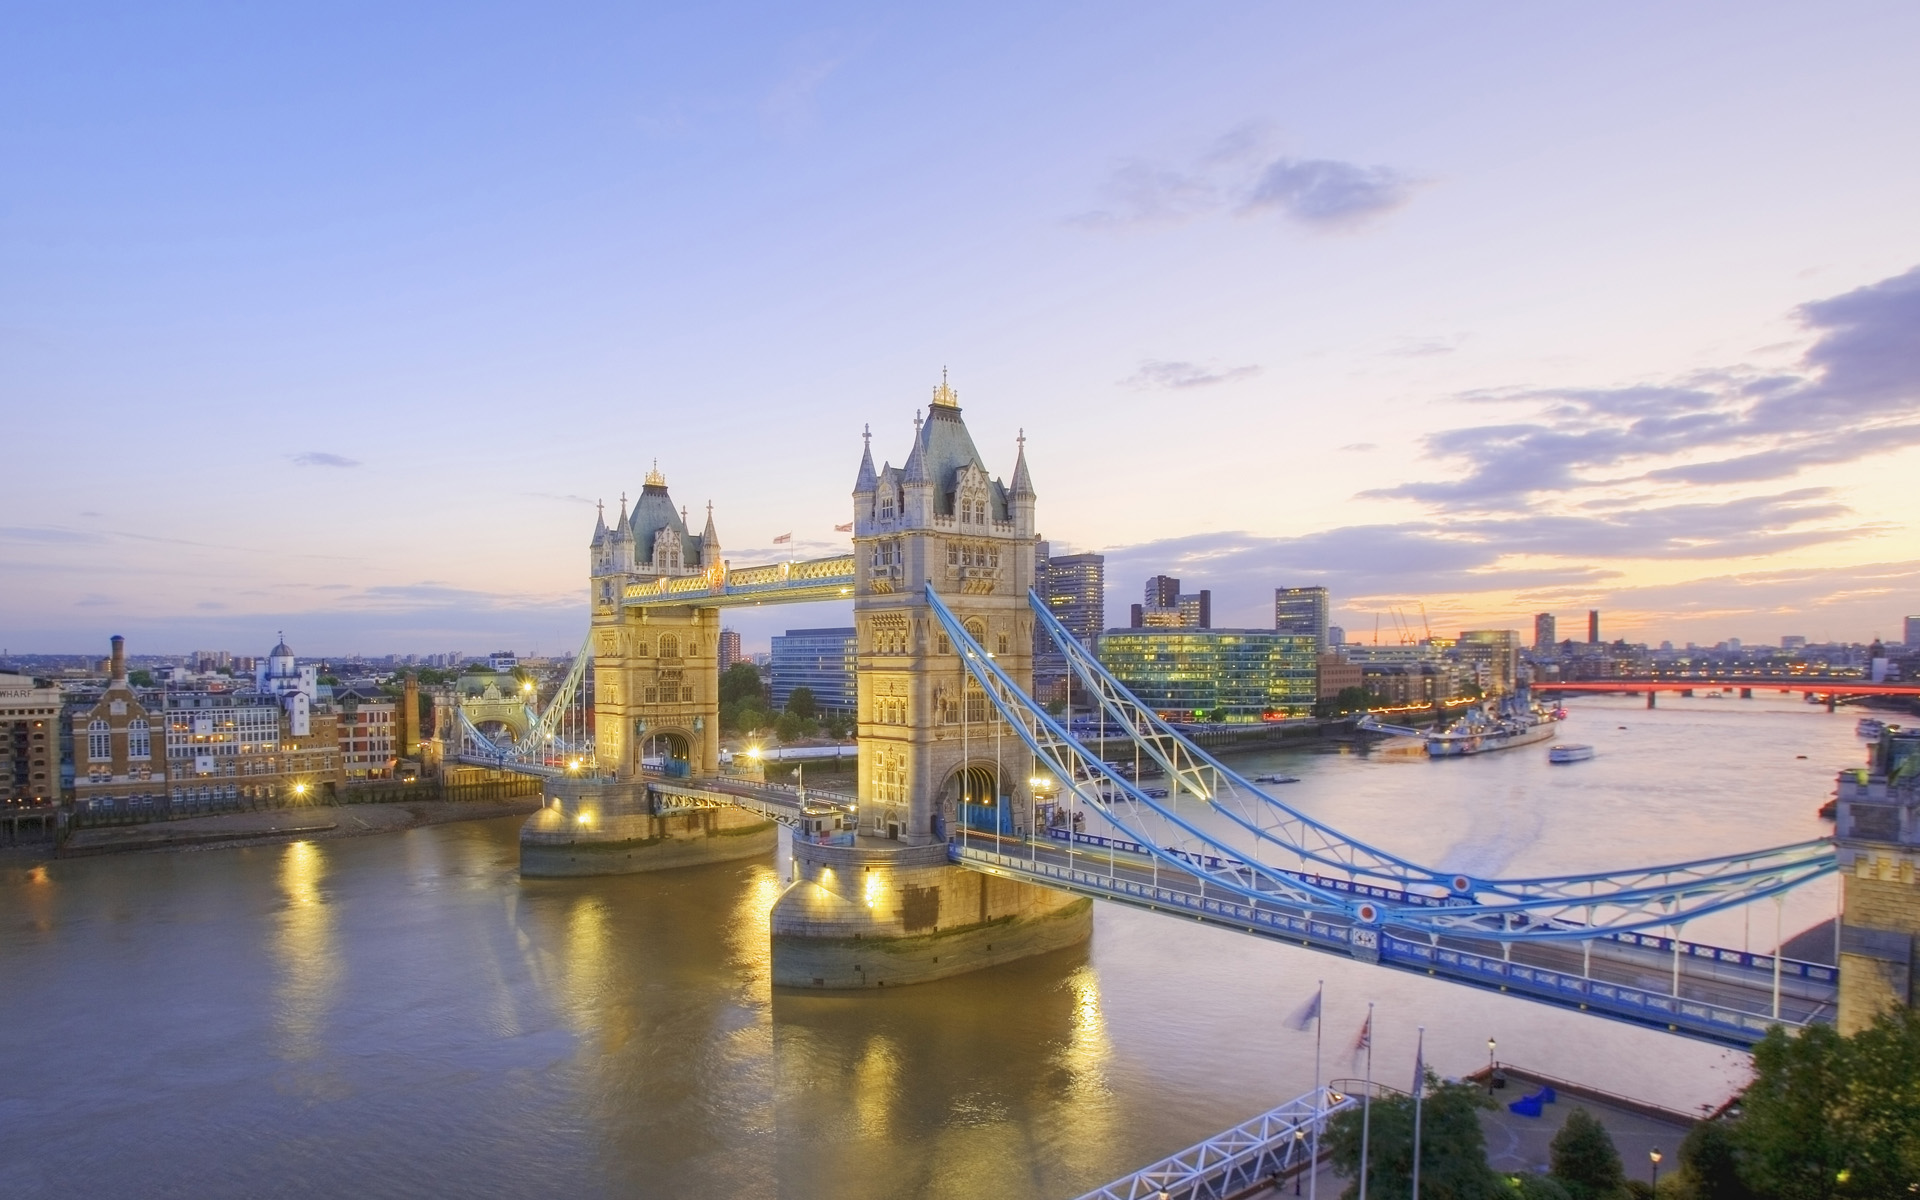 Thames River London, River Thames and Tower Bridge at Dusk, London, England « Awesome ...